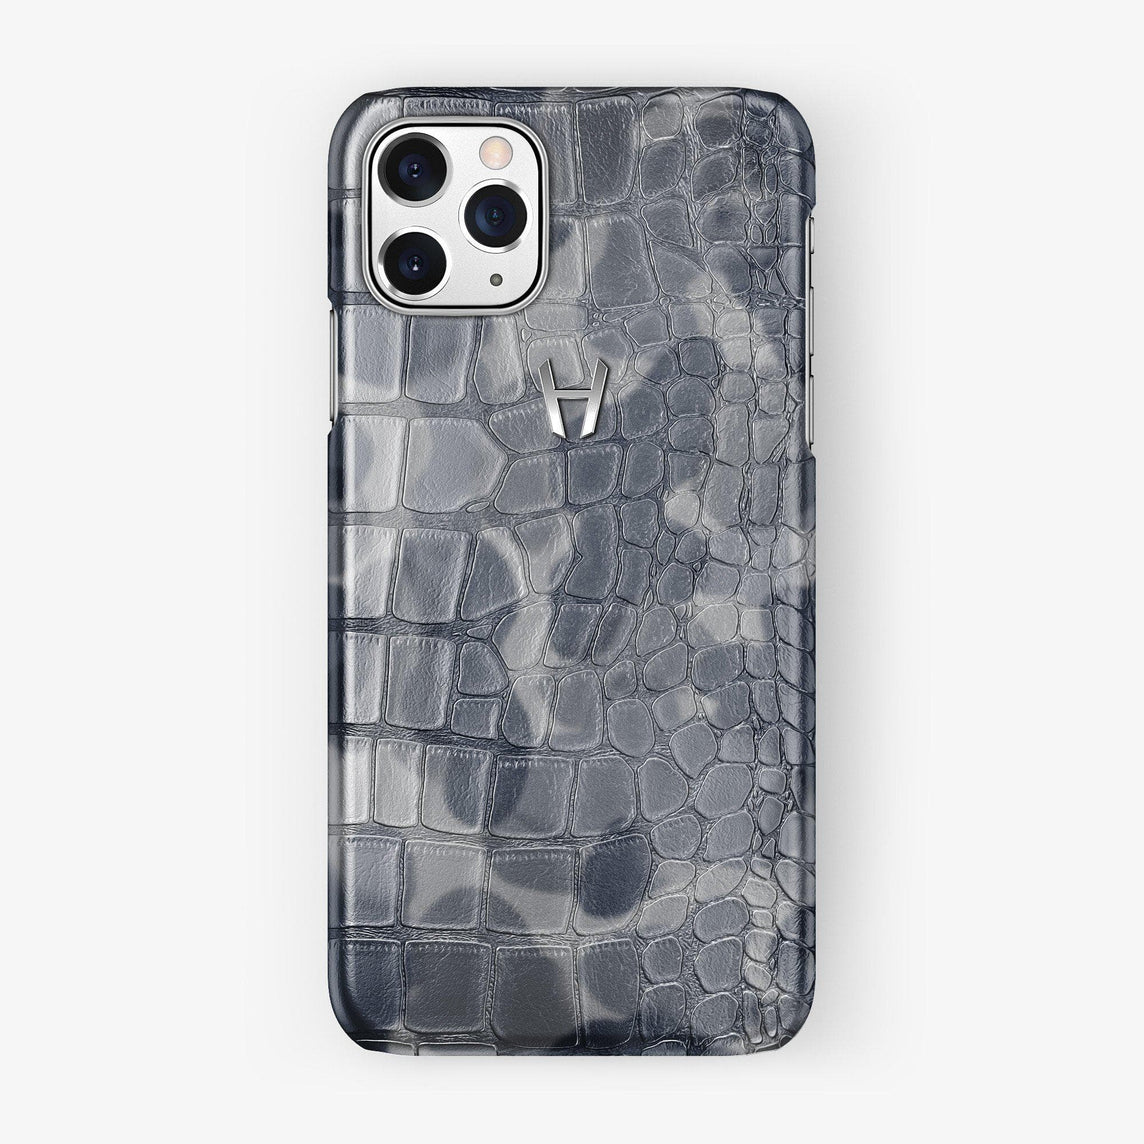 Alligator Case iPhone 11 Pro | Grey Camouflage - Stainless Steel